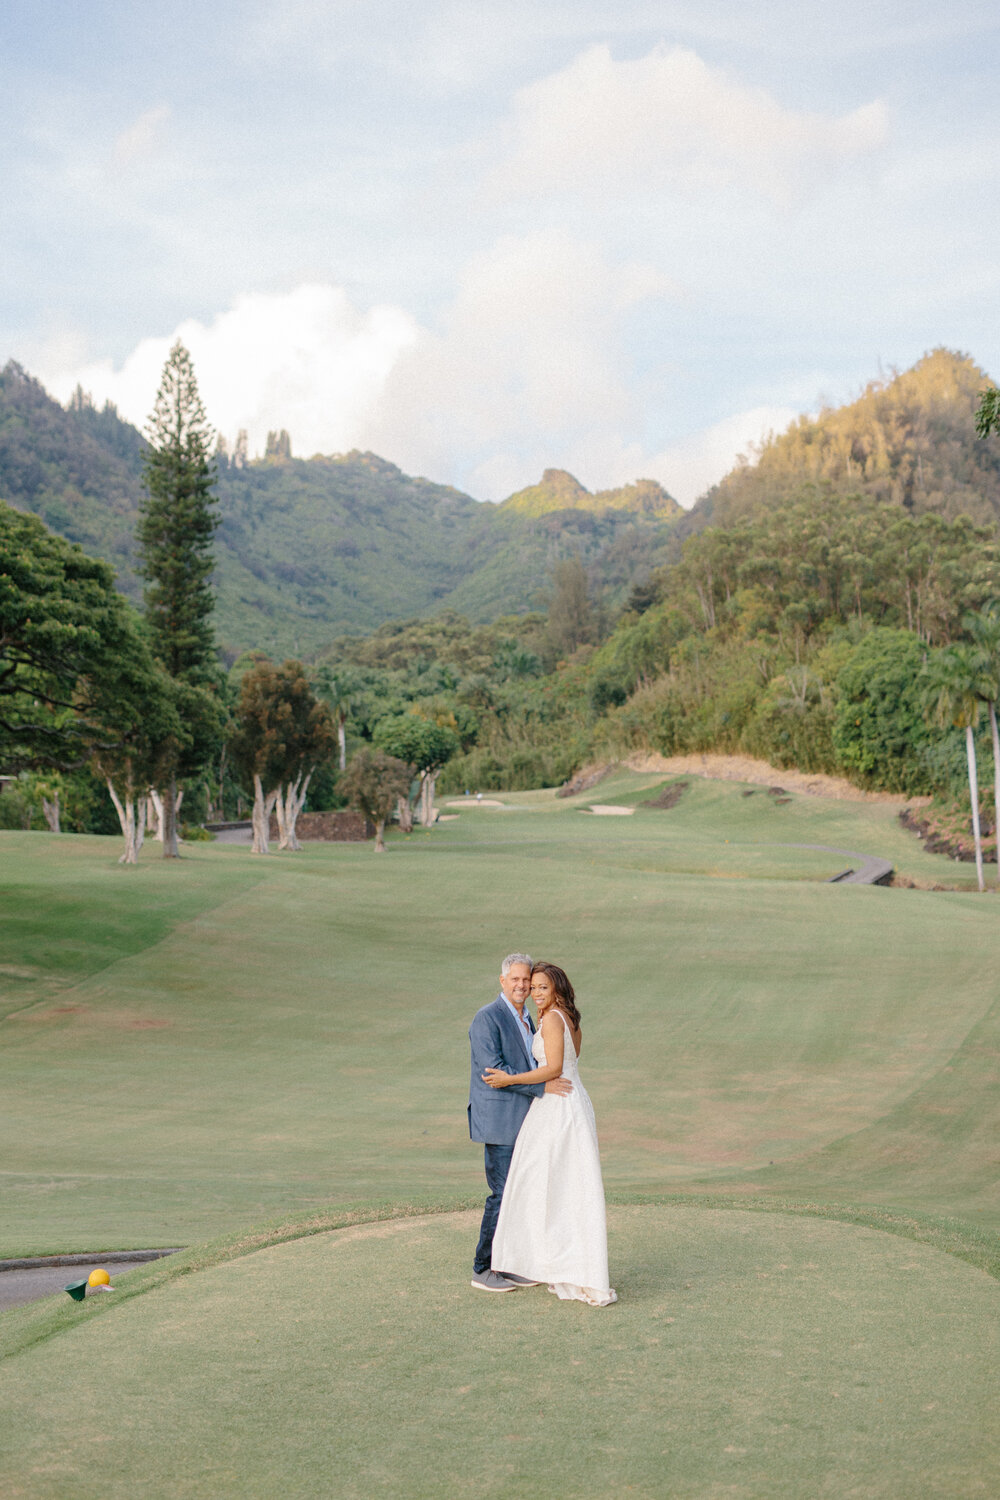 oahu-country-club-wedding-1.jpg